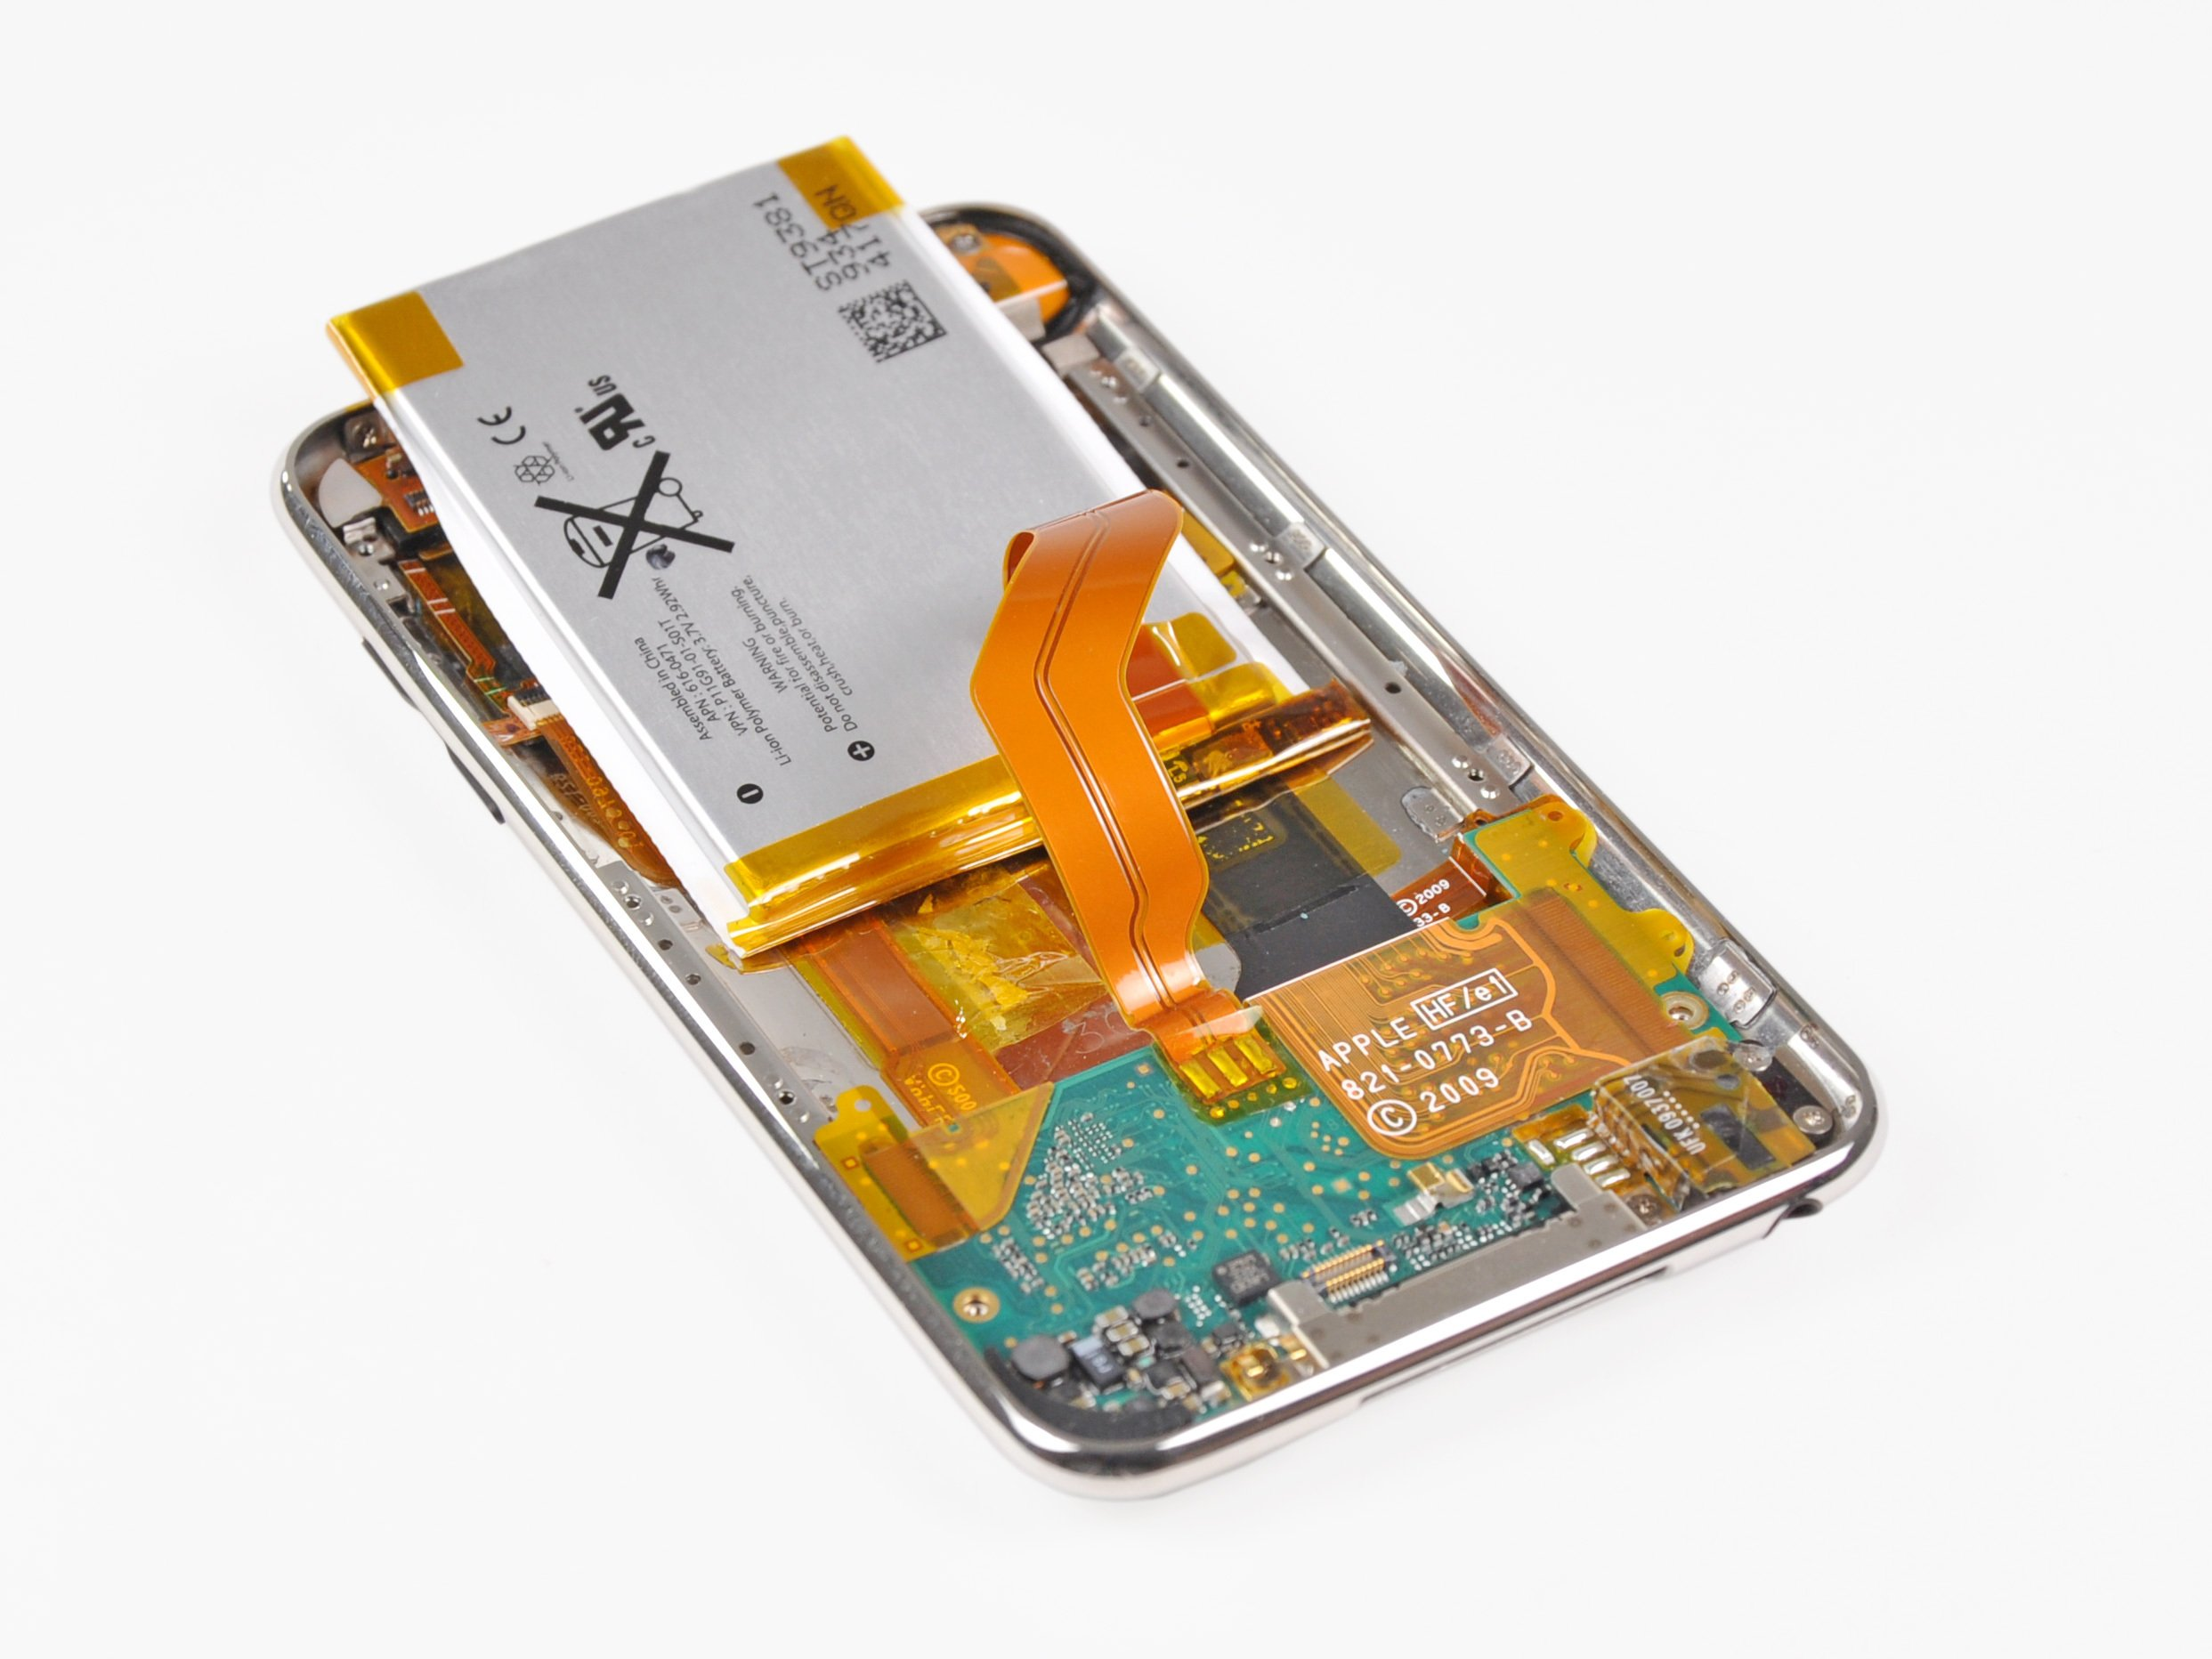 Ipod Touch 3rd Generation Battery Replacement Ifixit Repair Guide